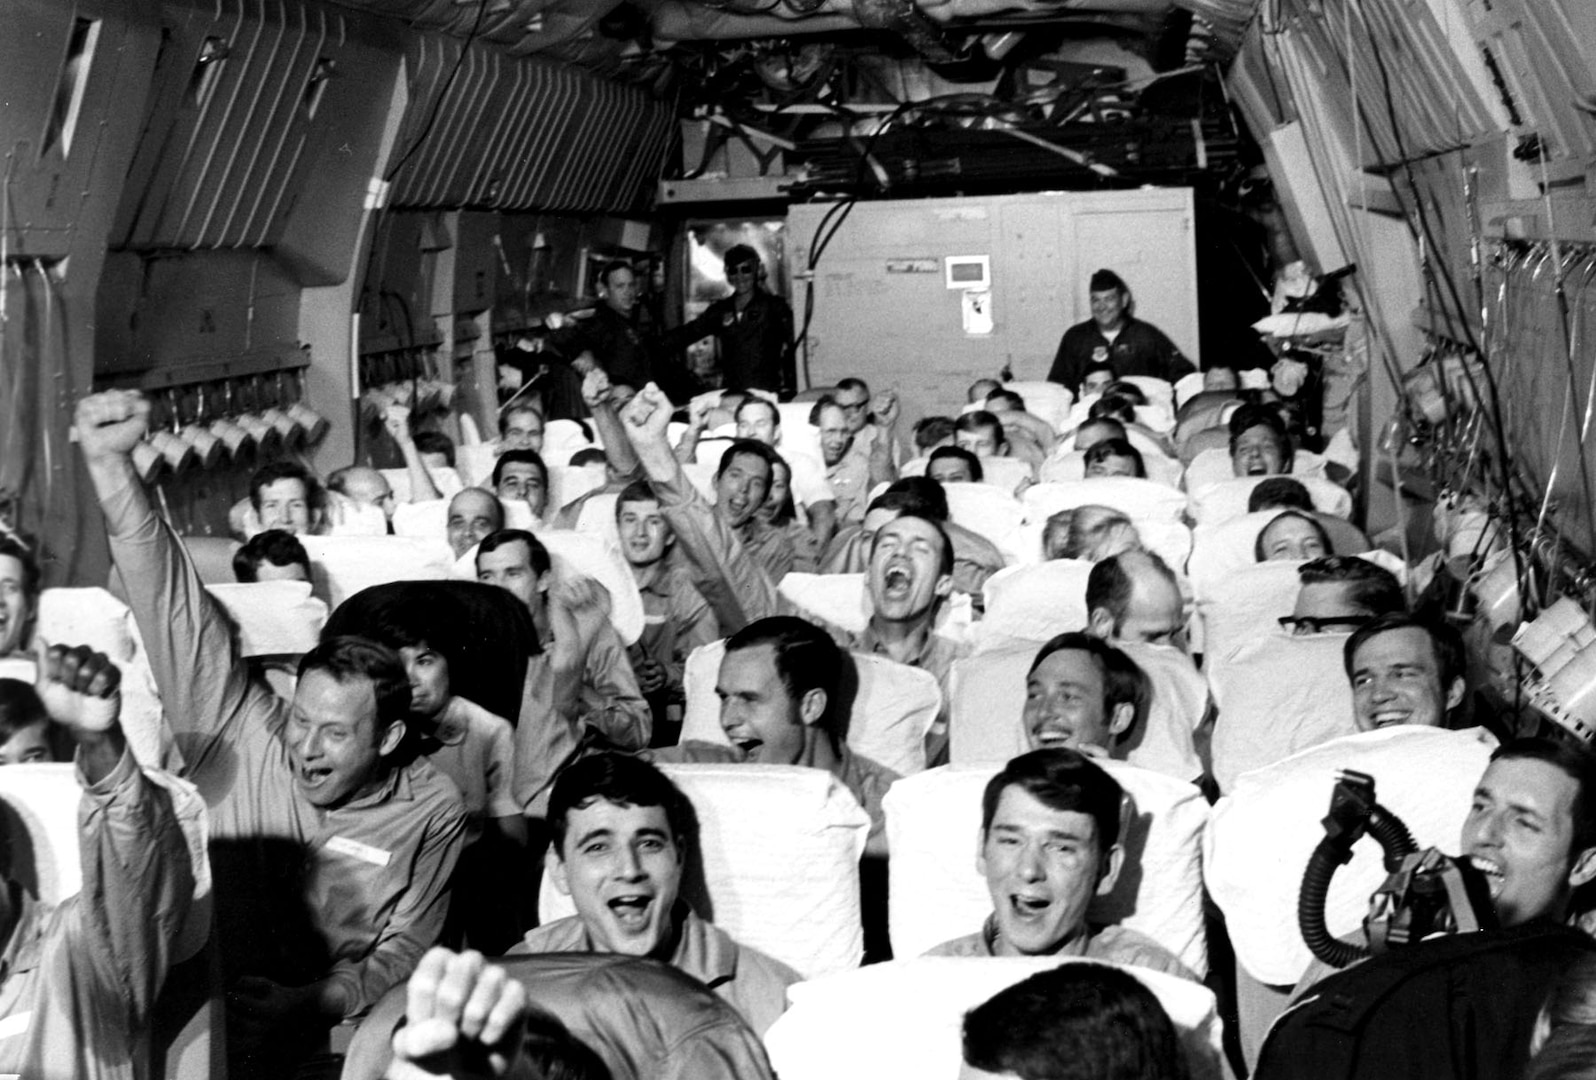 POWs celebrate after takeoff